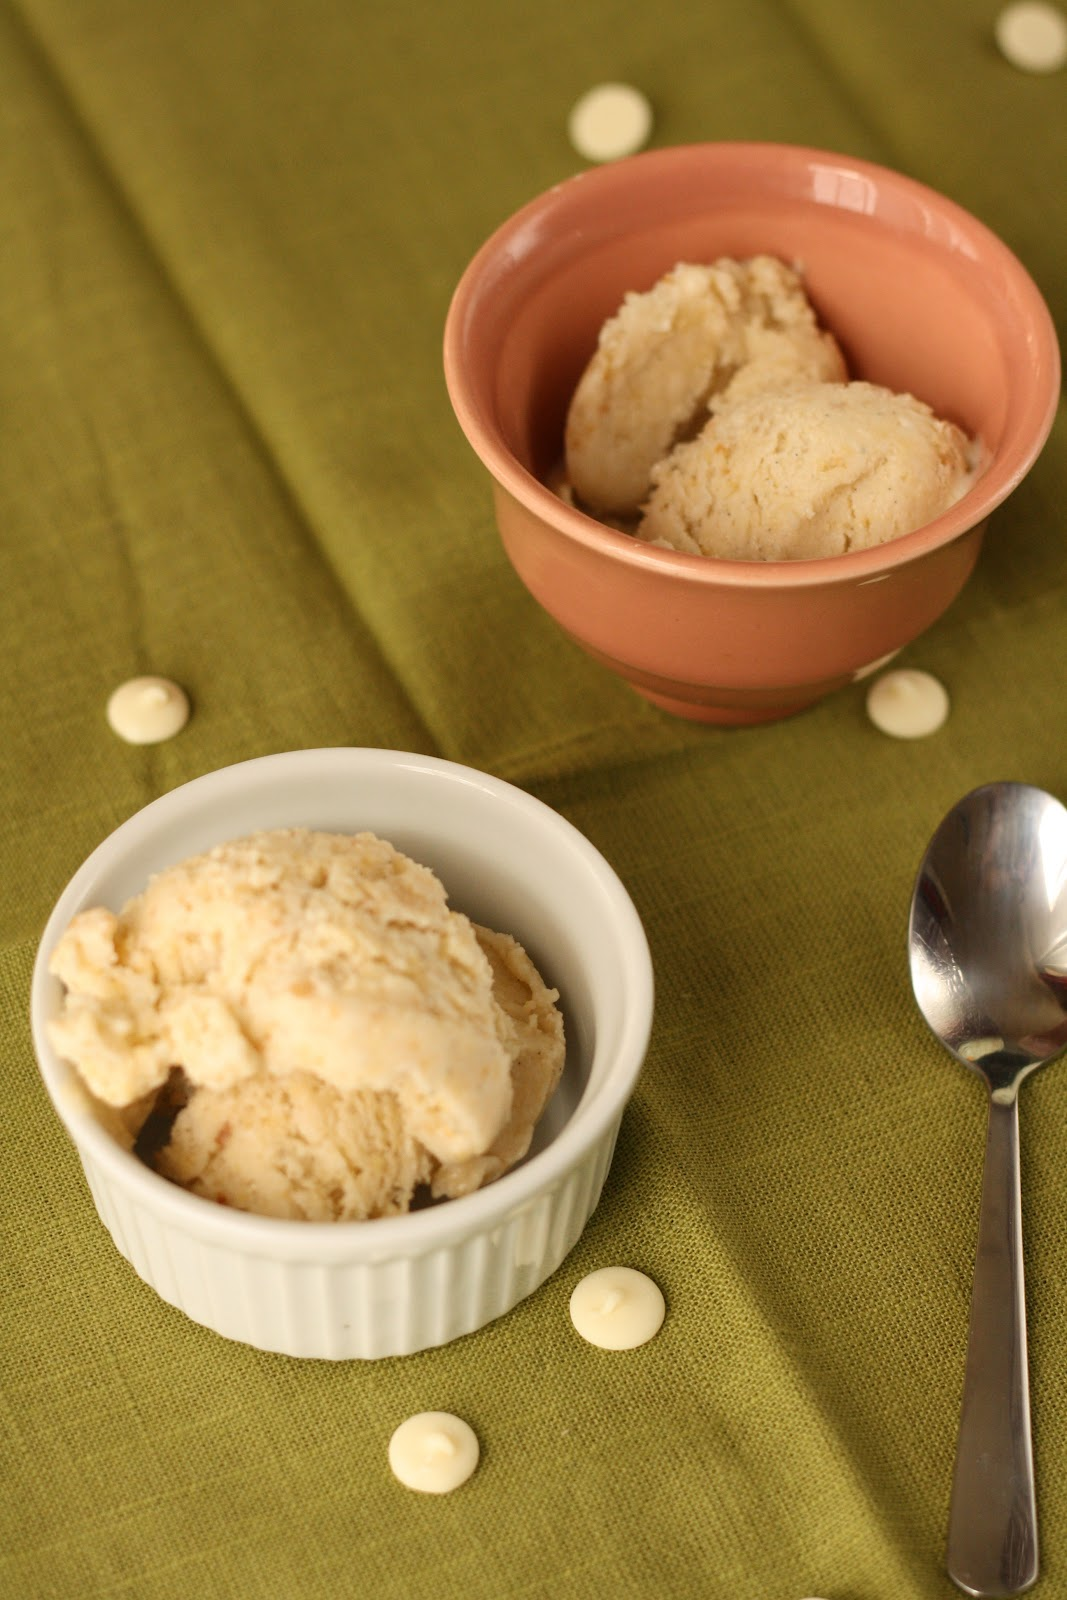 ... , Oregon: Banana Ice Cream with Caramelized White Chocolate Freckles